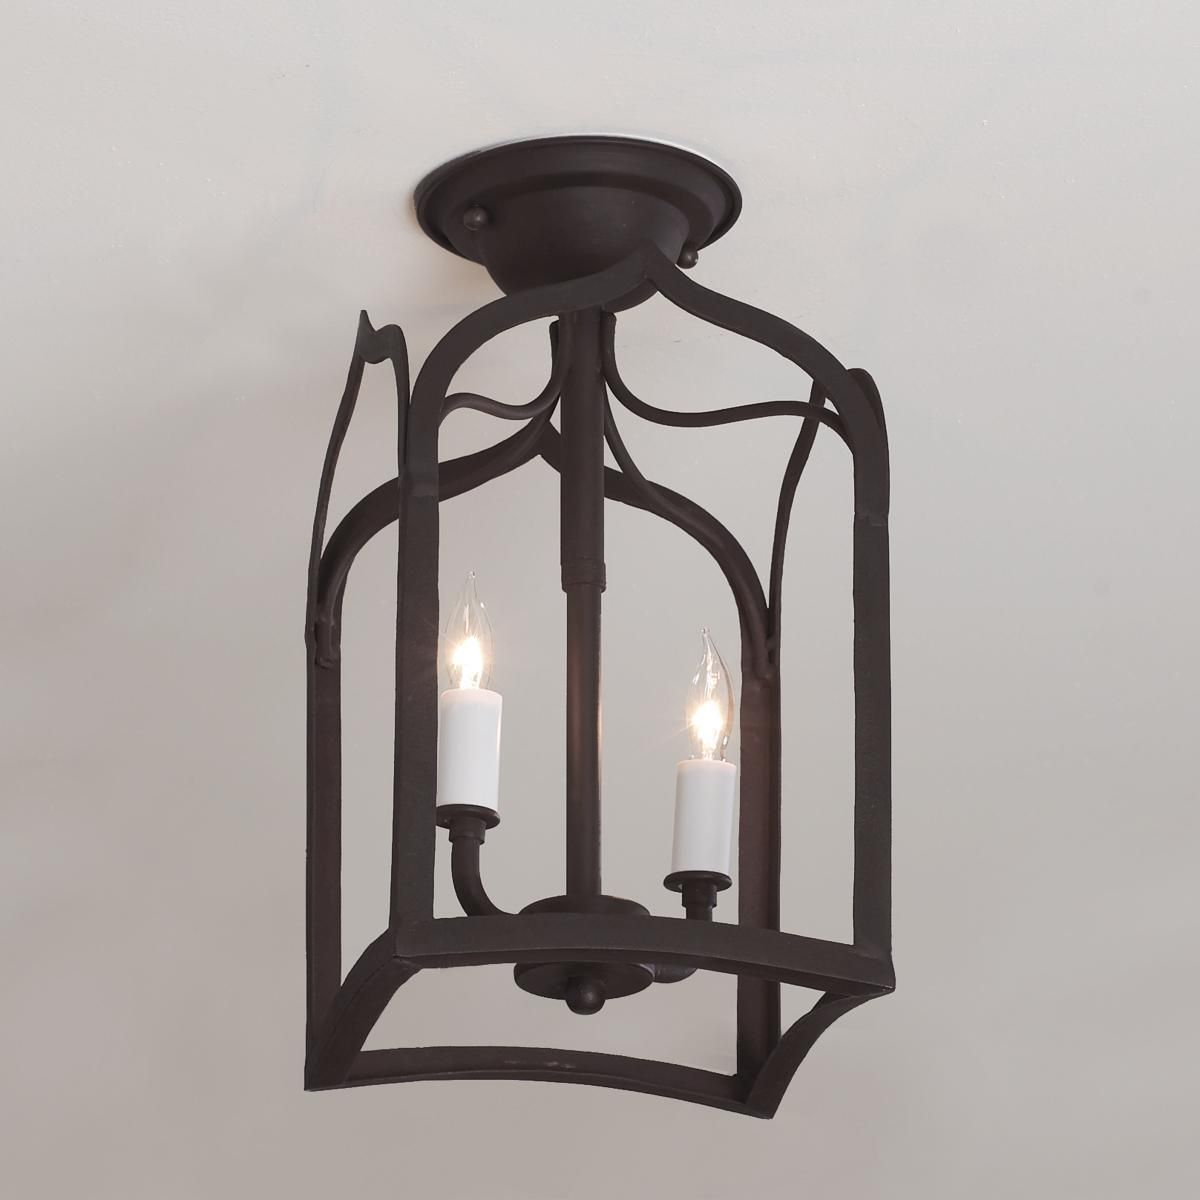 Gothic Arch Iron Ceiling Light Ceiling Lights Ceiling